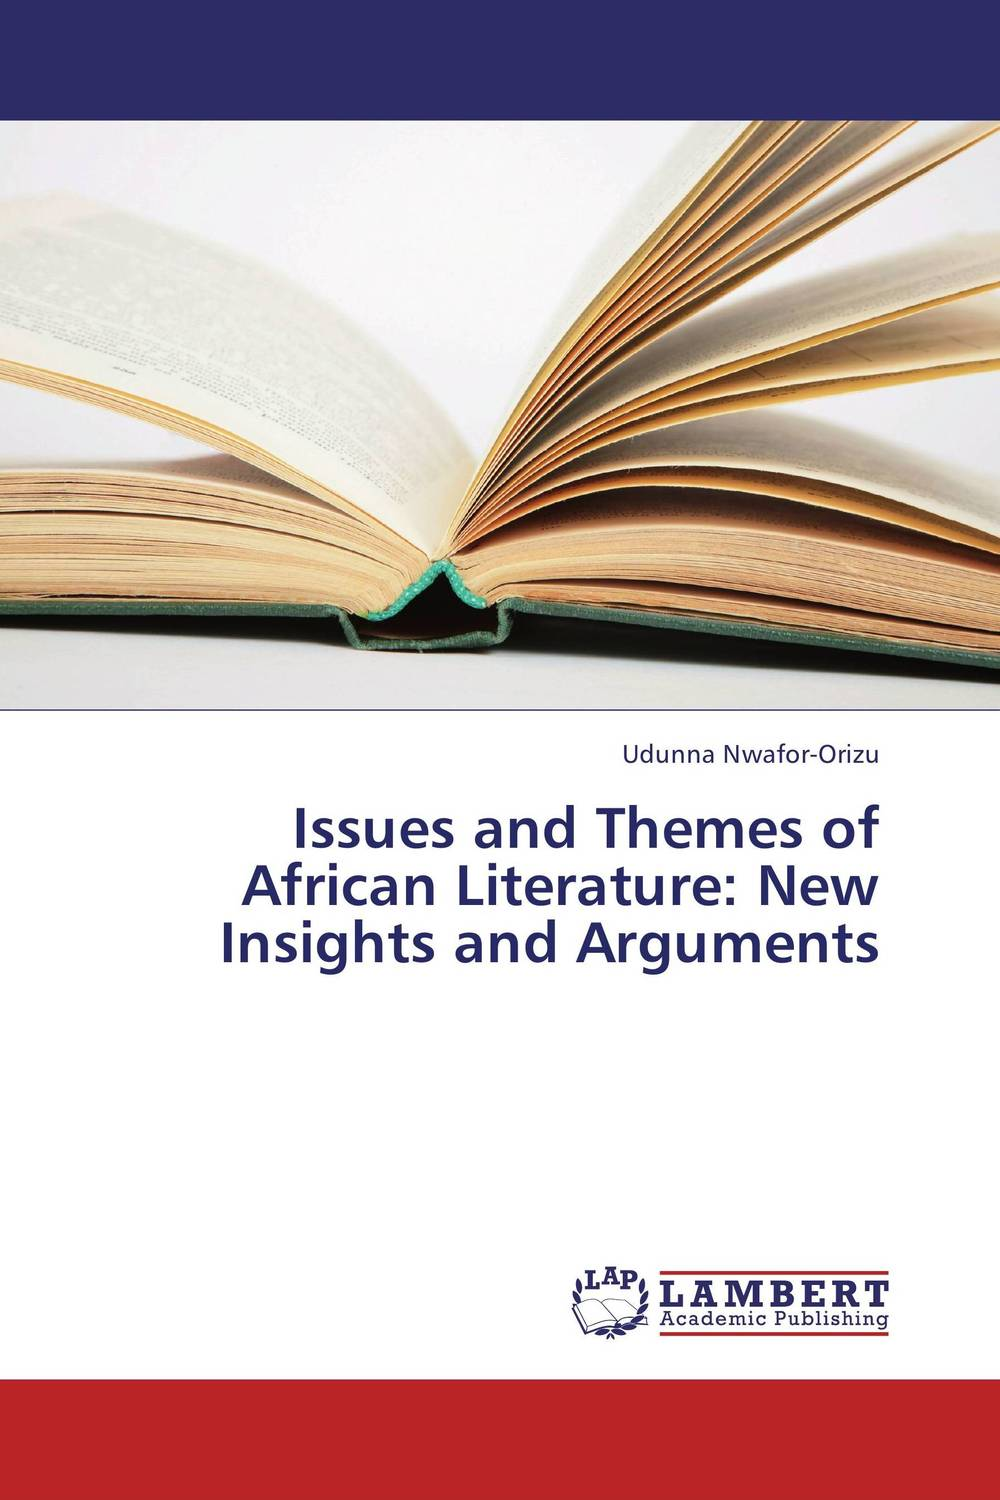 Issues and Themes of African Literature: New Insights and Arguments